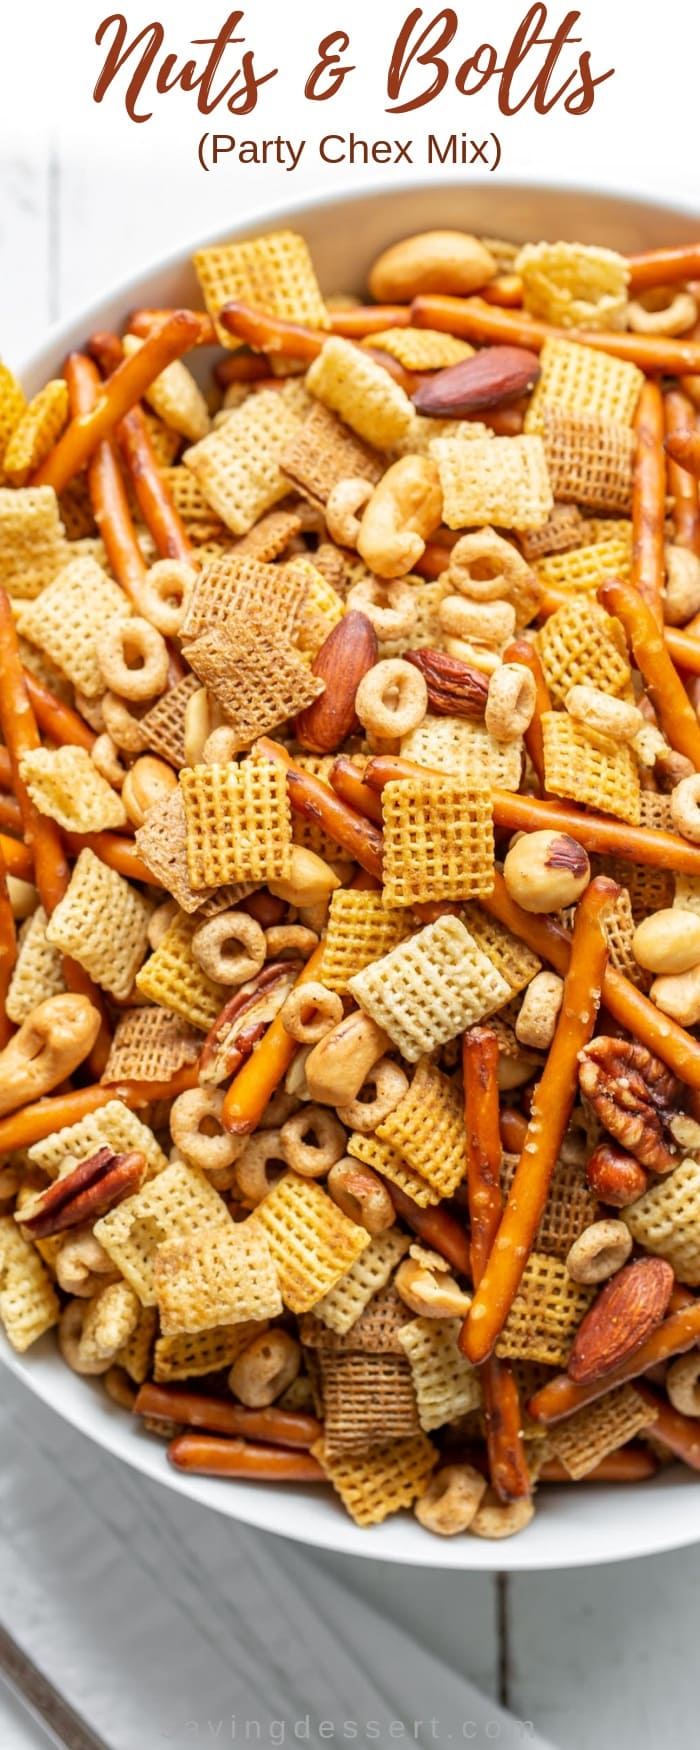 Nuts & Bolts, also known as Party Chex Mix, is one of the easiest, most beloved, delicious, quintessential holiday snacks ever invented! A terrific snack for the holidays, parties and football! #savingroomfordessert #chexmix #chexmixrecipe #nuts&bolts #snackmix #appetizer #holidays #chexrecipe #recipe